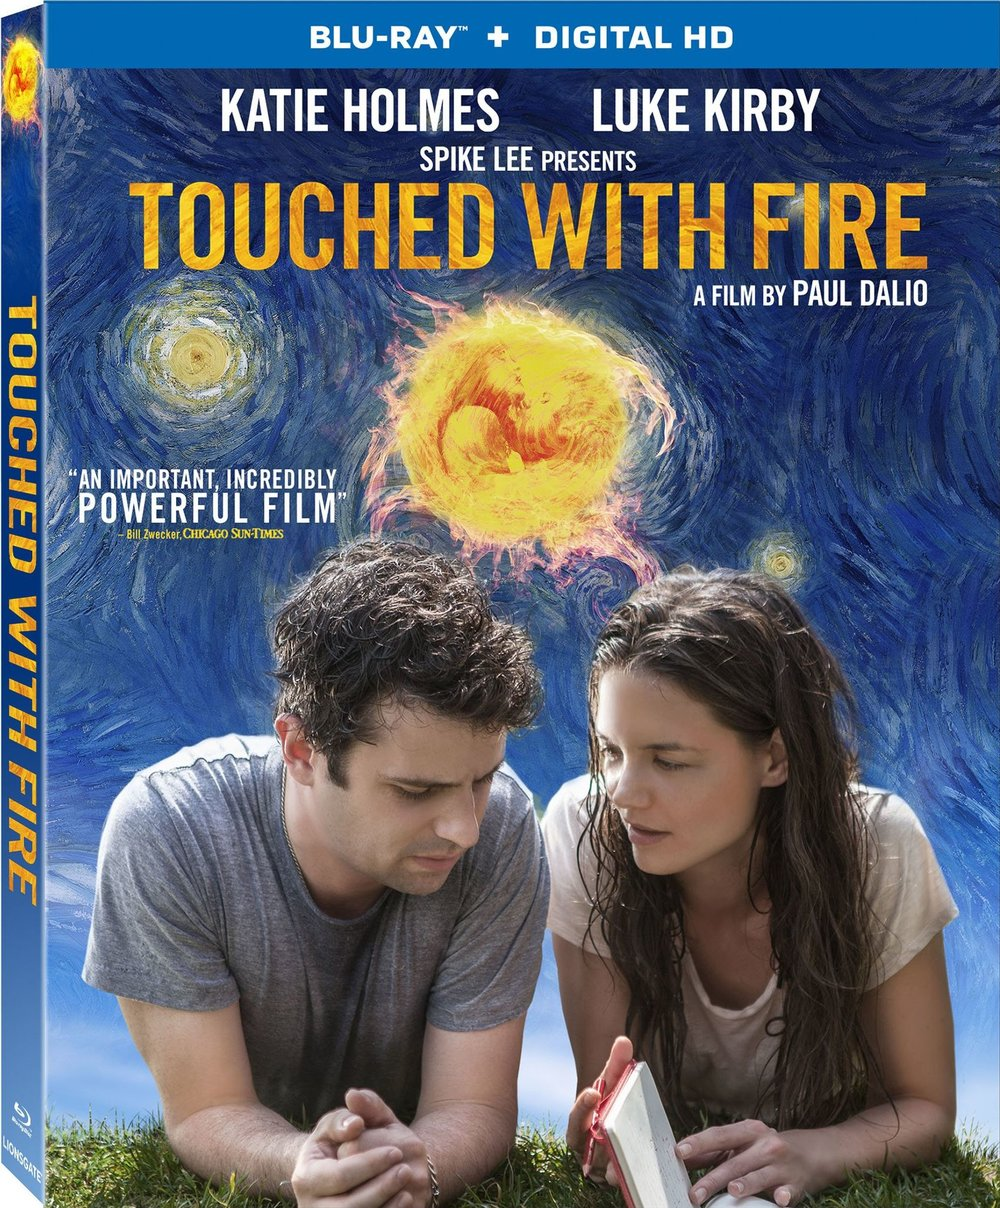 touched-with-fire-blu-ray-cover-16.jpg